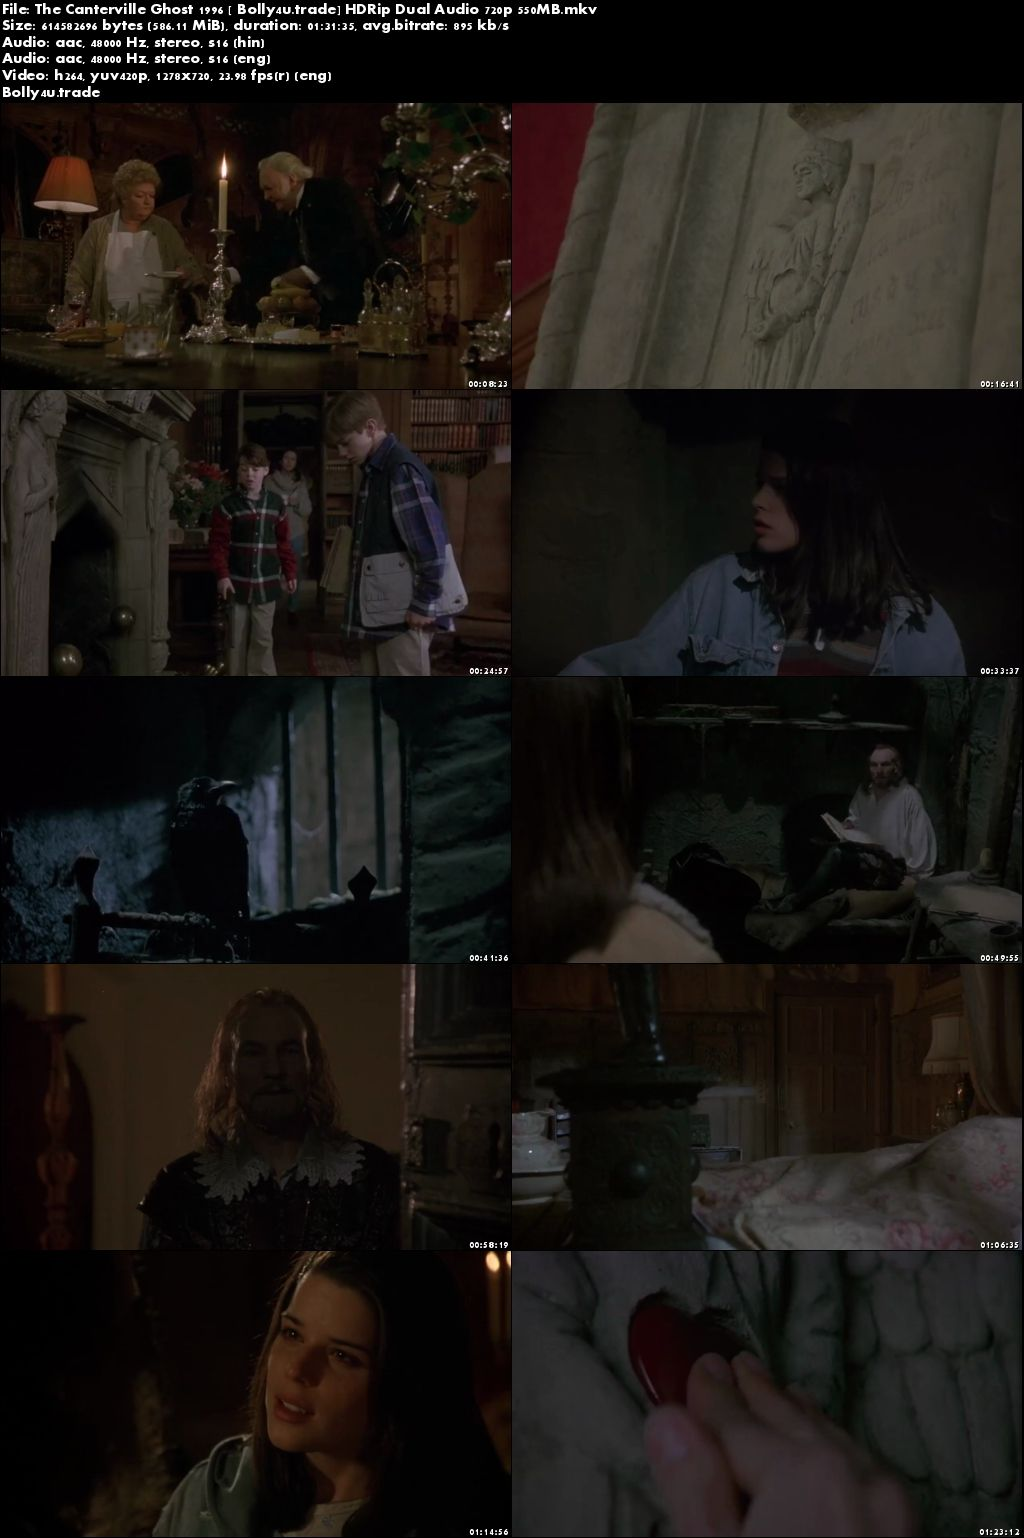 The Canterville Ghost 1996 HDRip 550Mb Hindi Dual Audio 720p Download